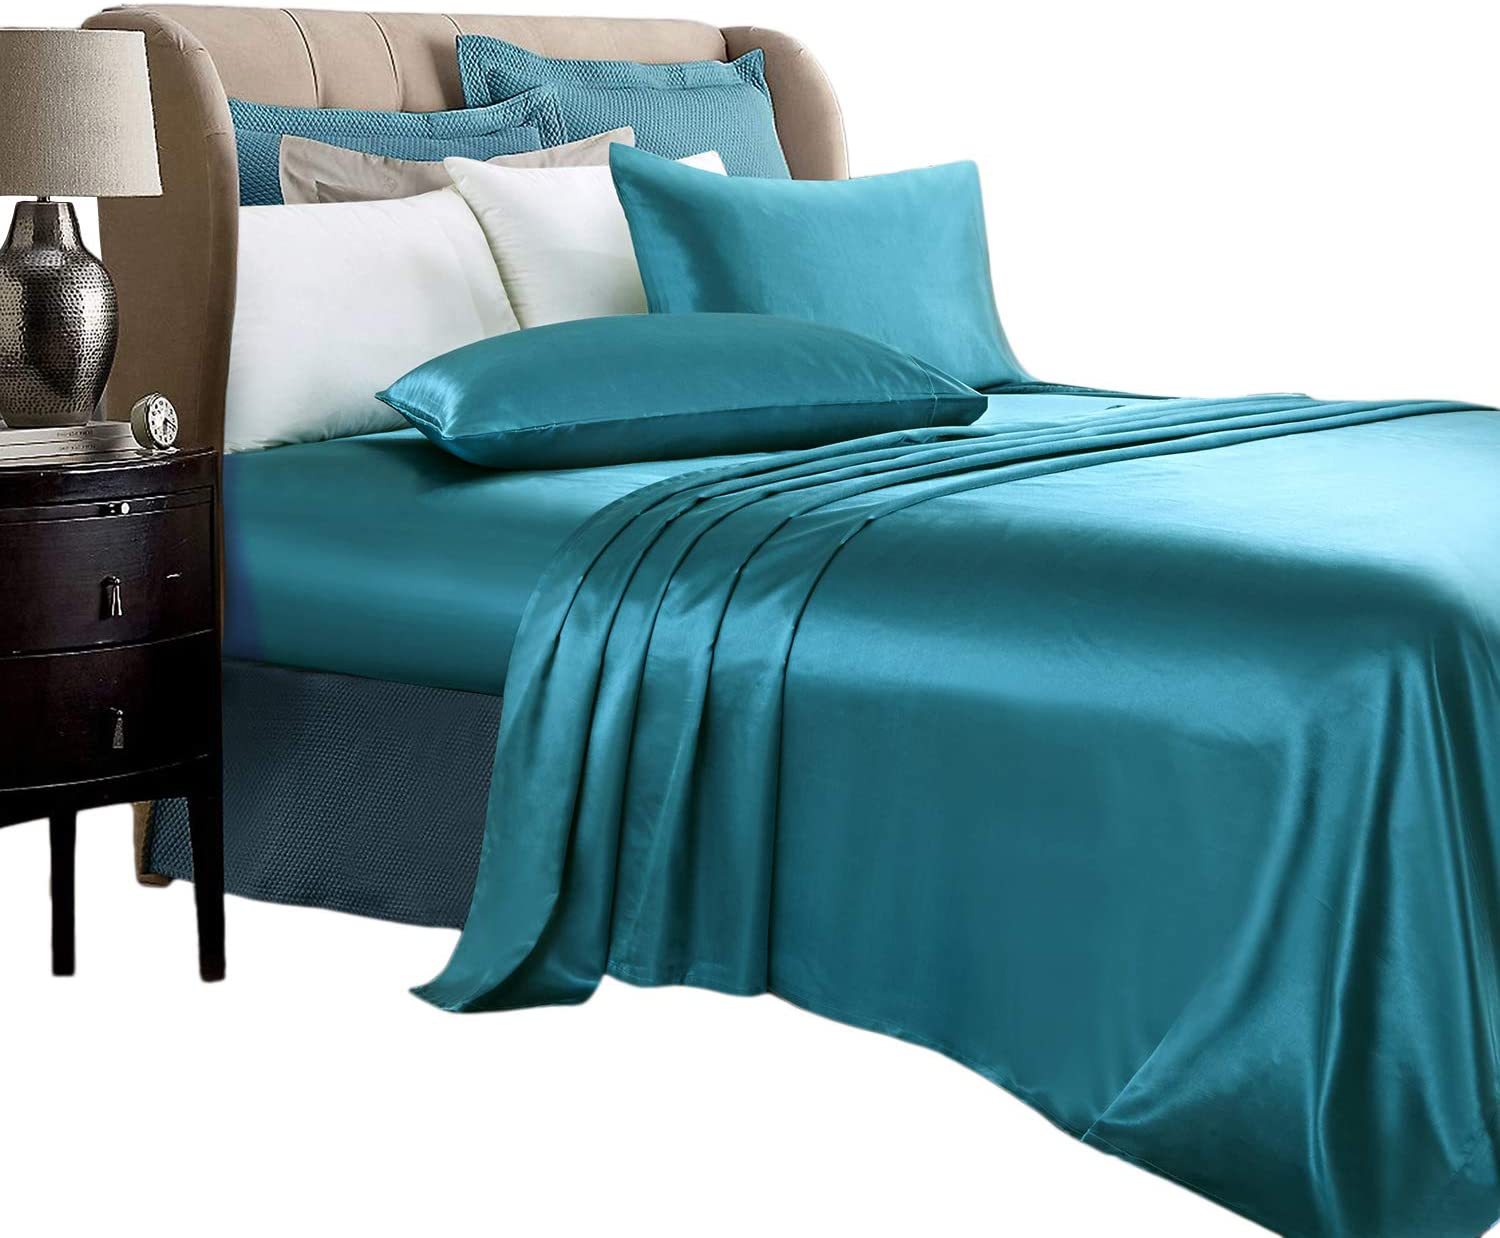 SILKY SOFT Satin 6 piece QUEEN Sheet Set BLUE Polyester NEW DEEP FITTED 17 INCH!